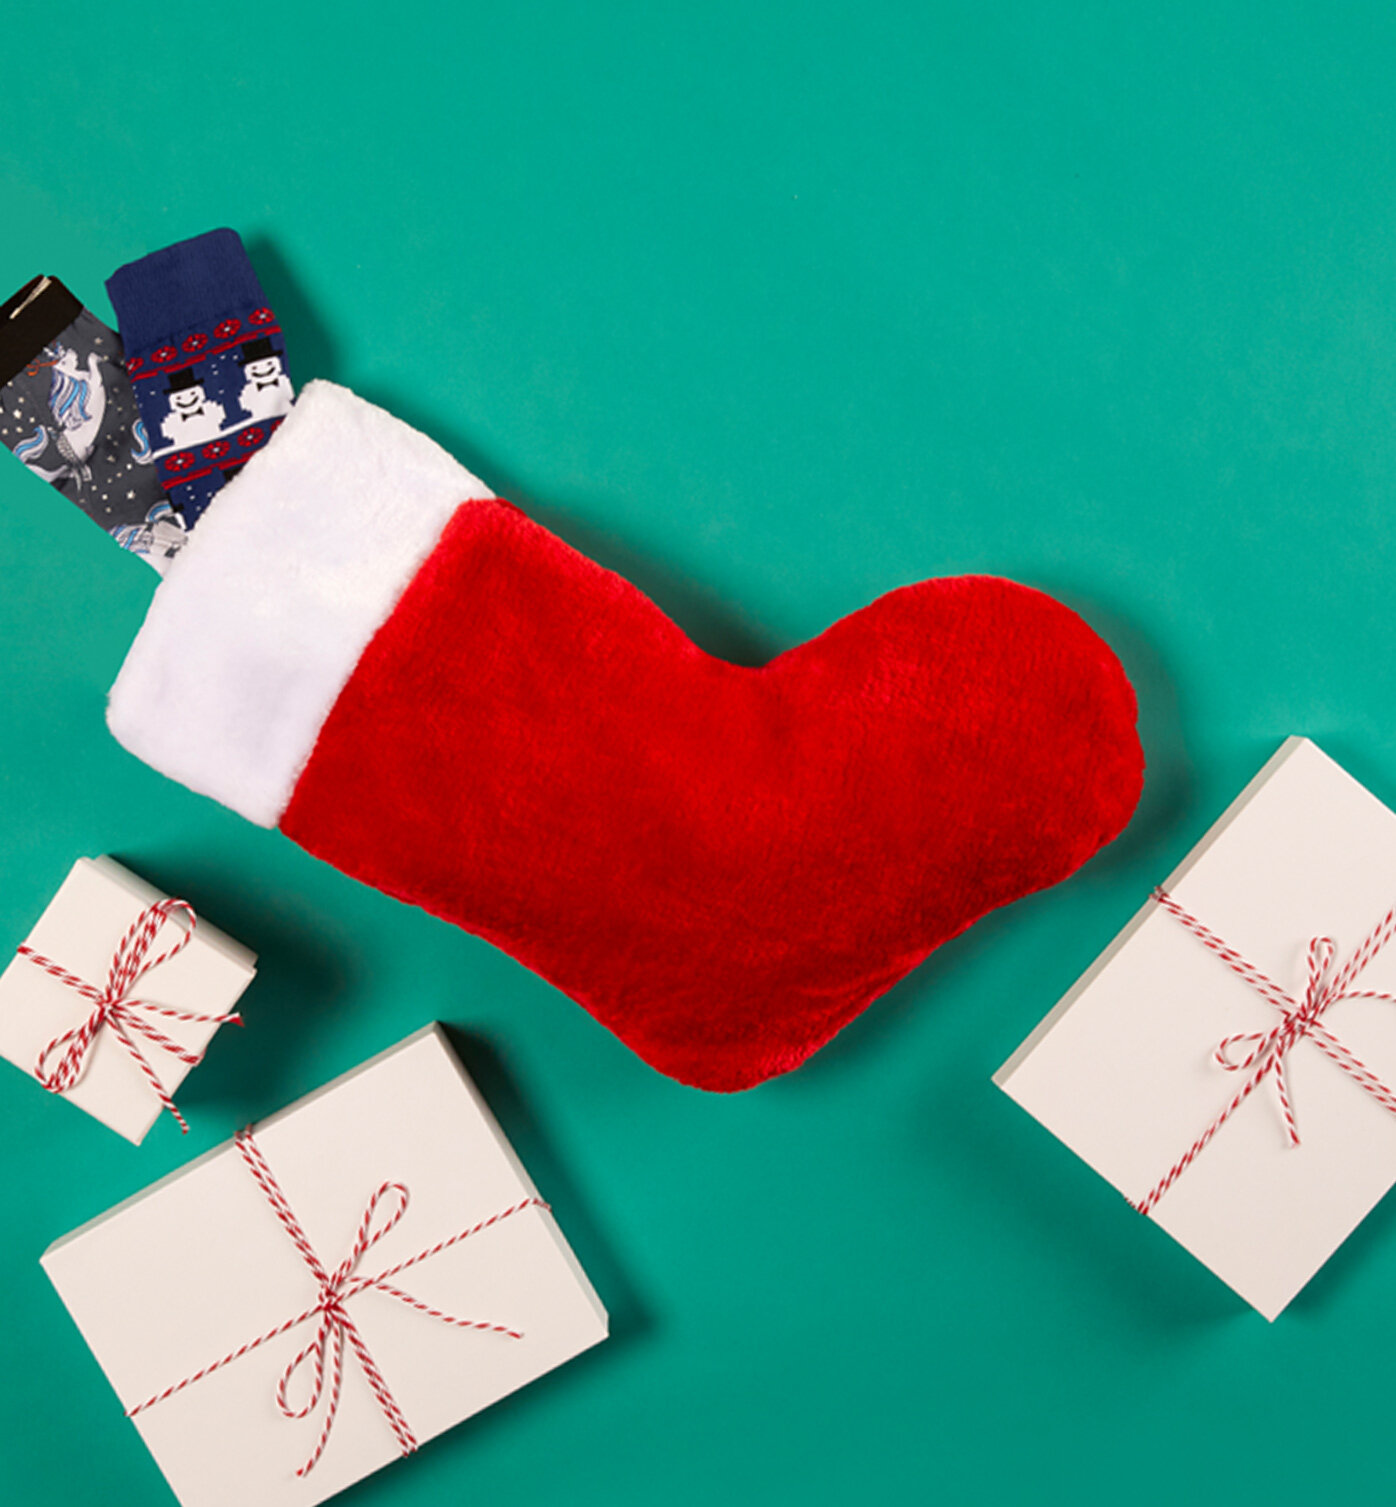 Stocking Stuffers - Stockings are one of the best parts of the Holidays. They're chock-full of tiny gifts that bring a smile to everyone's face. We have an idea for the best stocking stuffer of all time: Buddy Bands™. The dog-lover in your life will cry tears of joy, and you'll have plenty of cute content for Instagram.